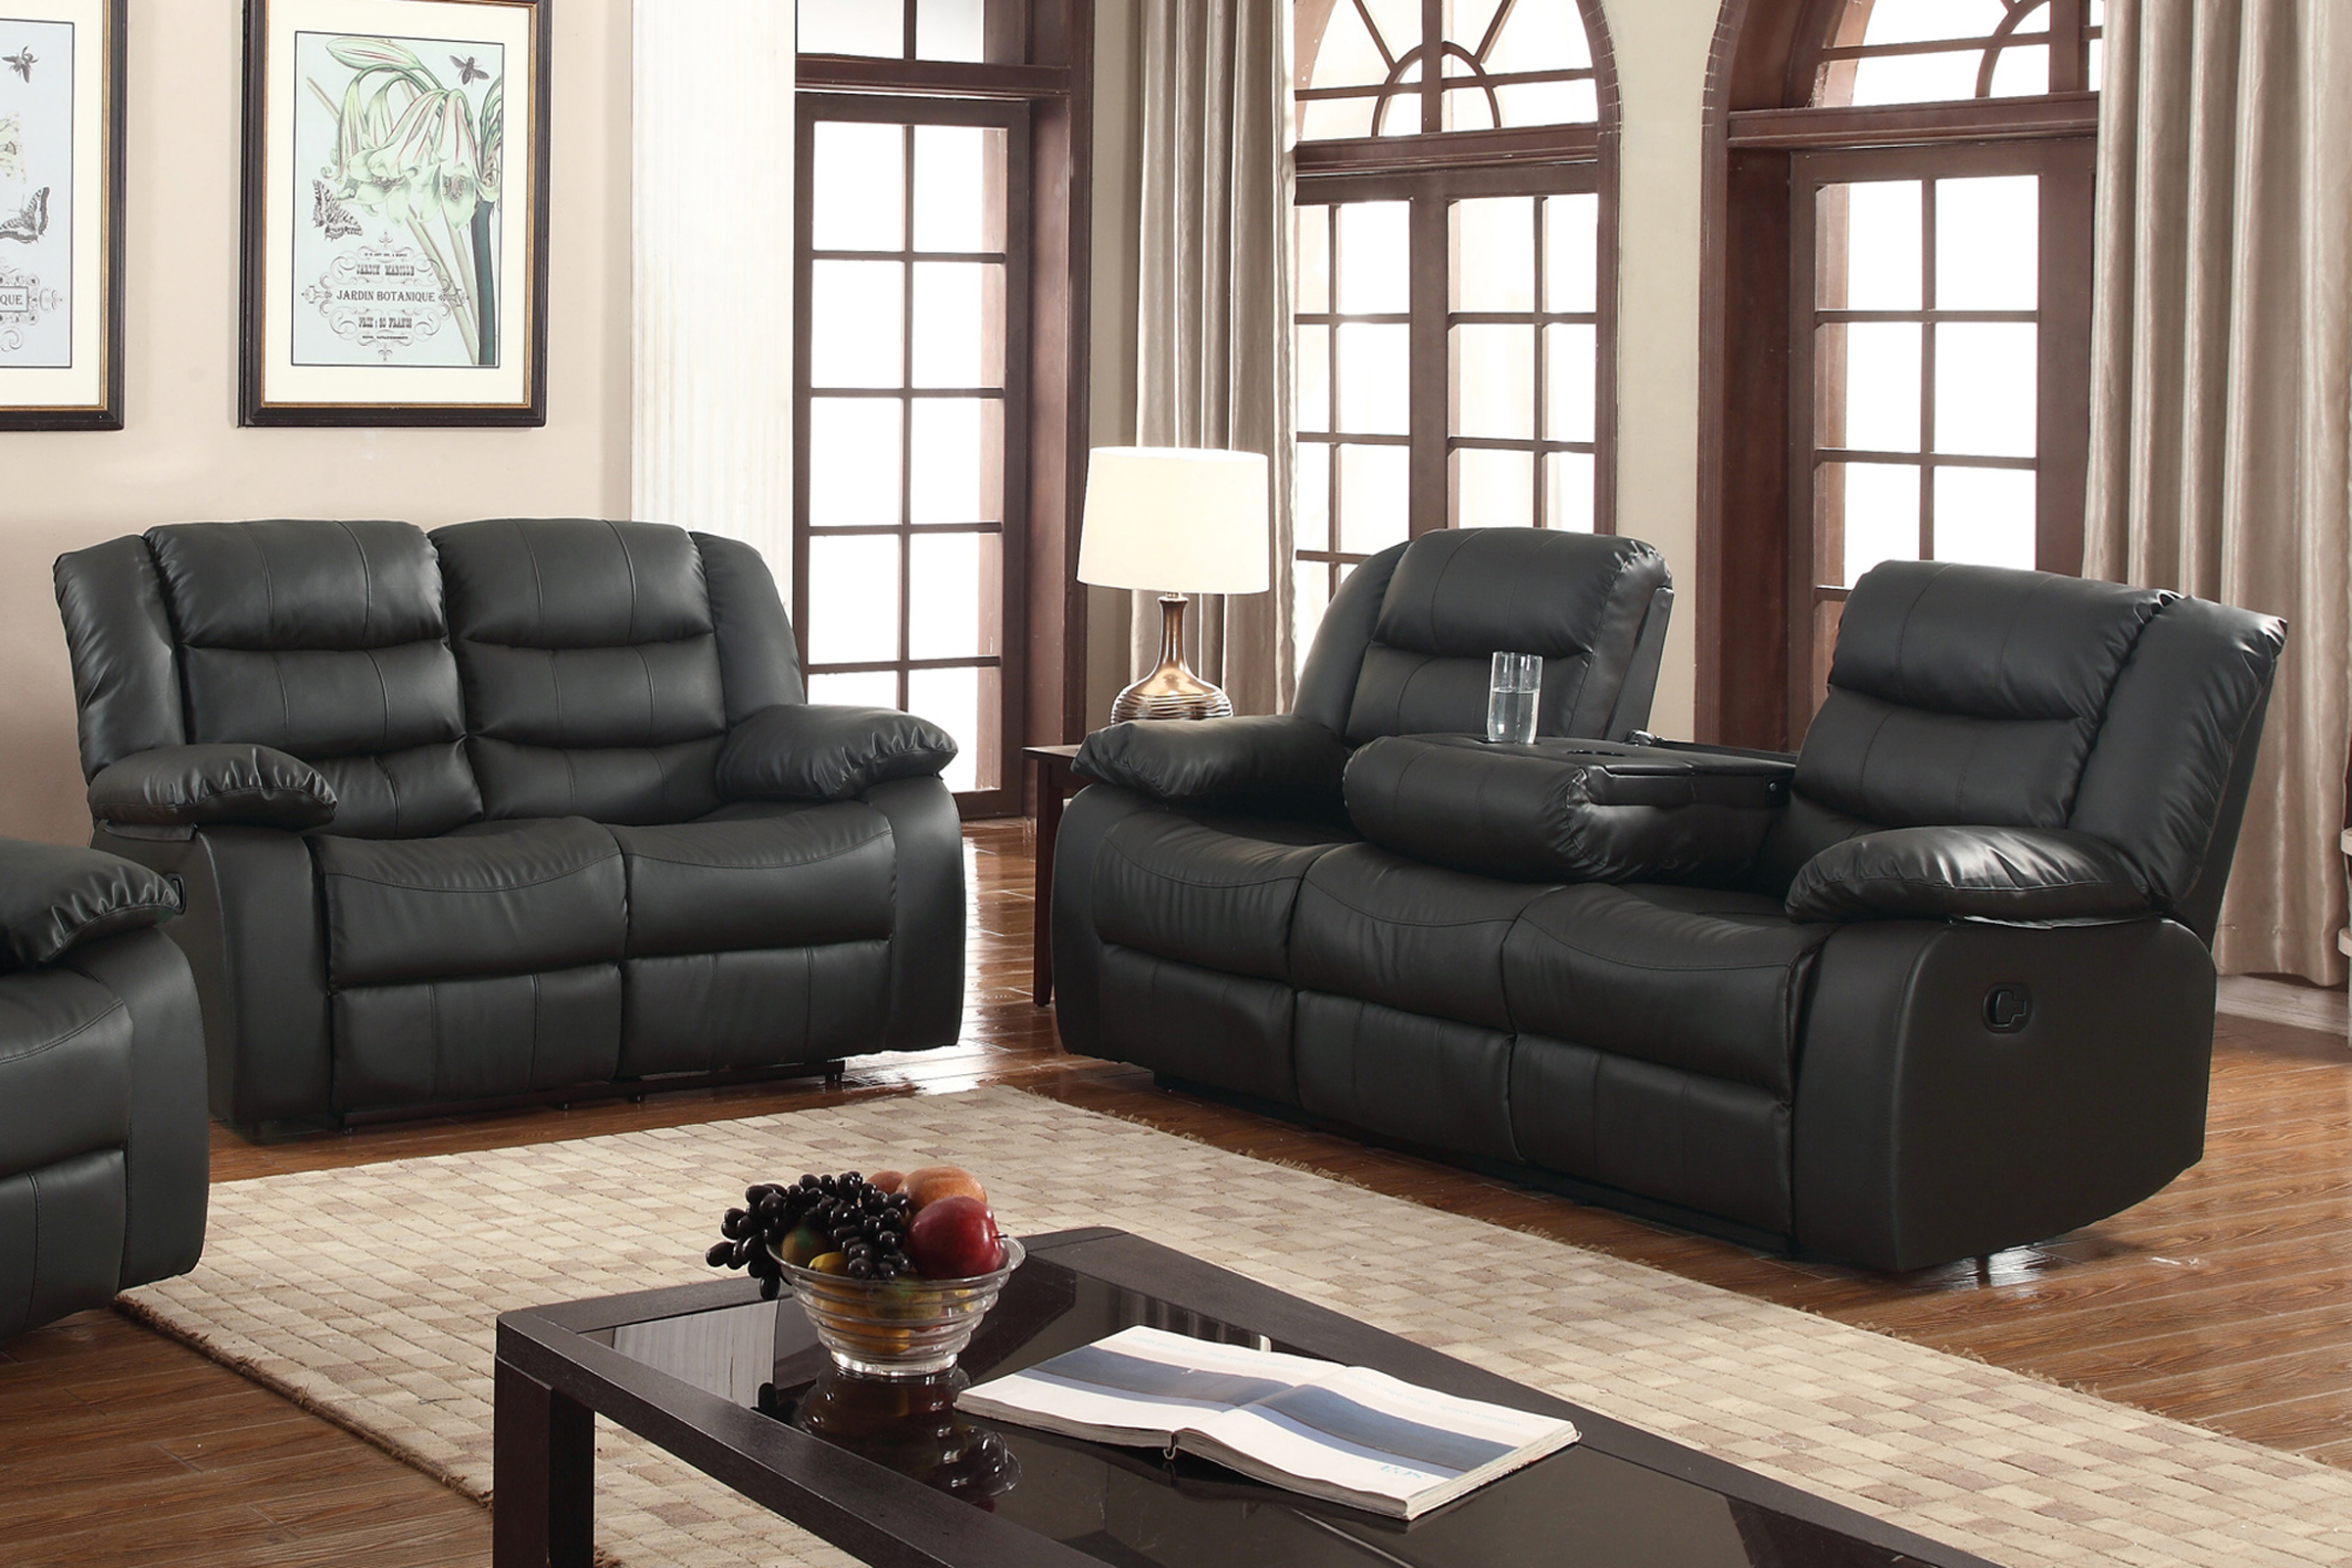 Layla 2 Pc Black Faux Leather Living Room Reclining Sofa And Loveseat Set  With Drop  Part 76